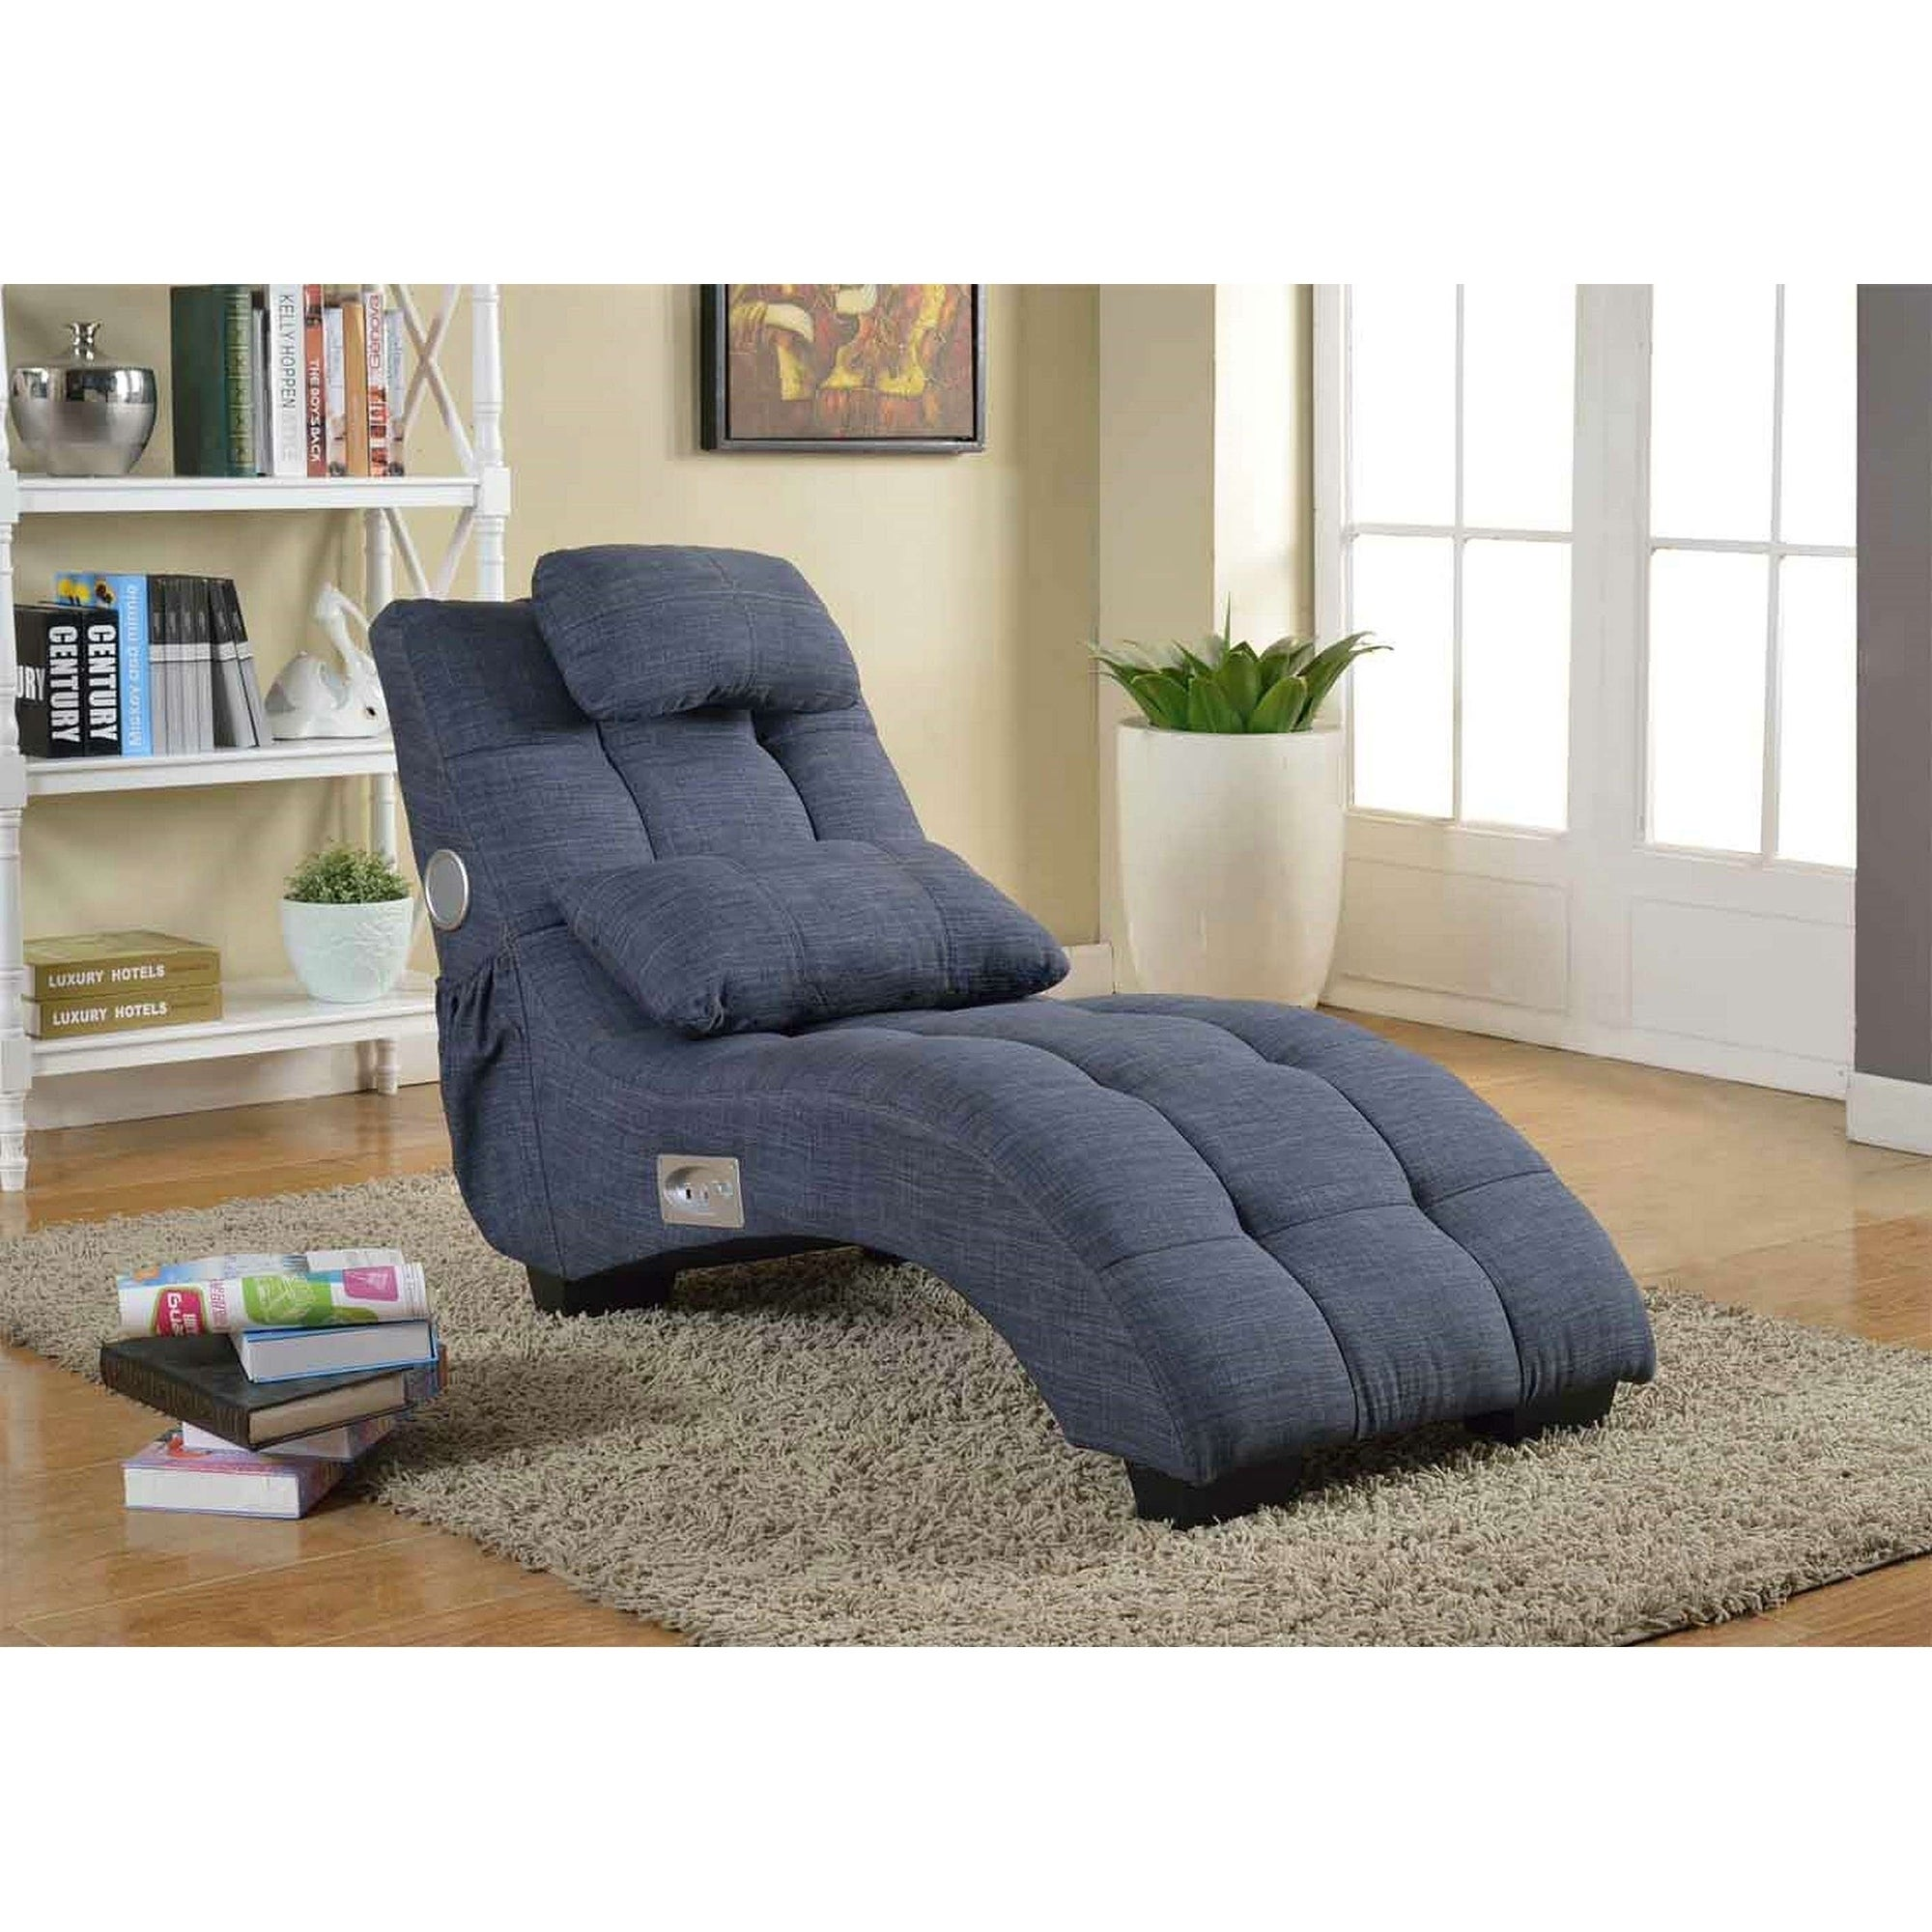 Best Master Furniture Chaise Lounge Overstock 22365552